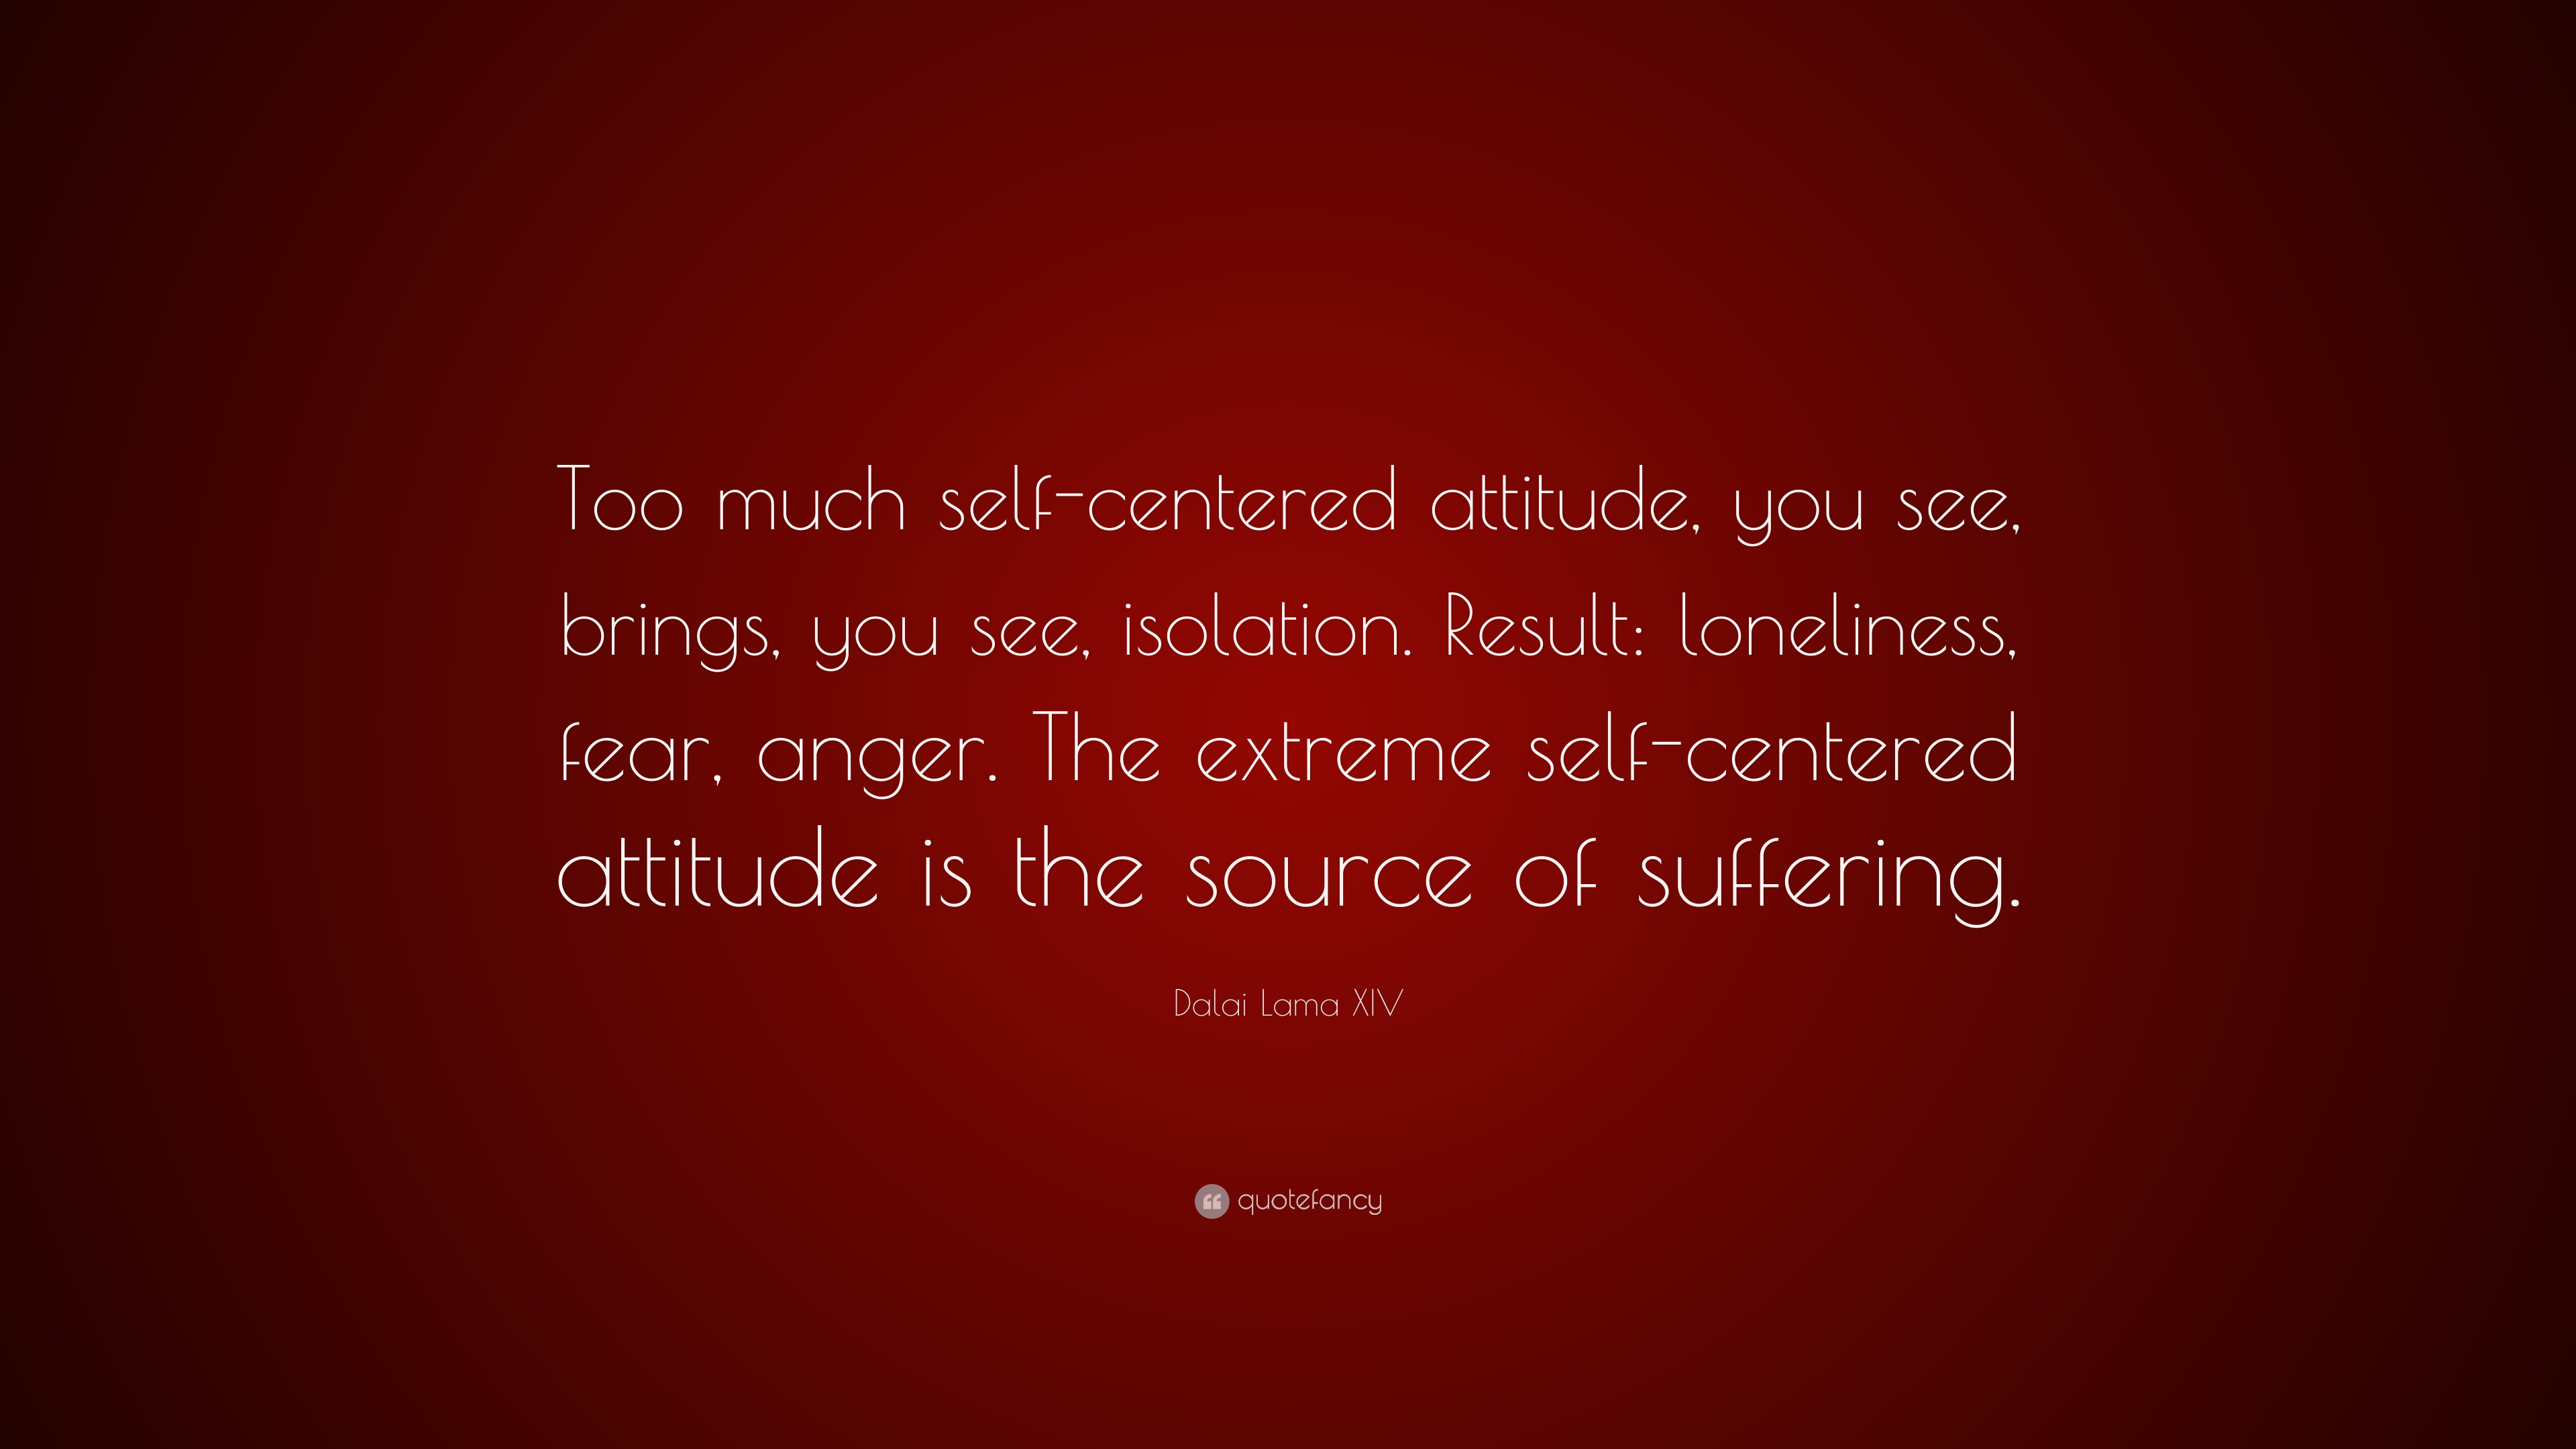 Dalai Lama Xiv Quote Too Much Self Centered Attitude You See